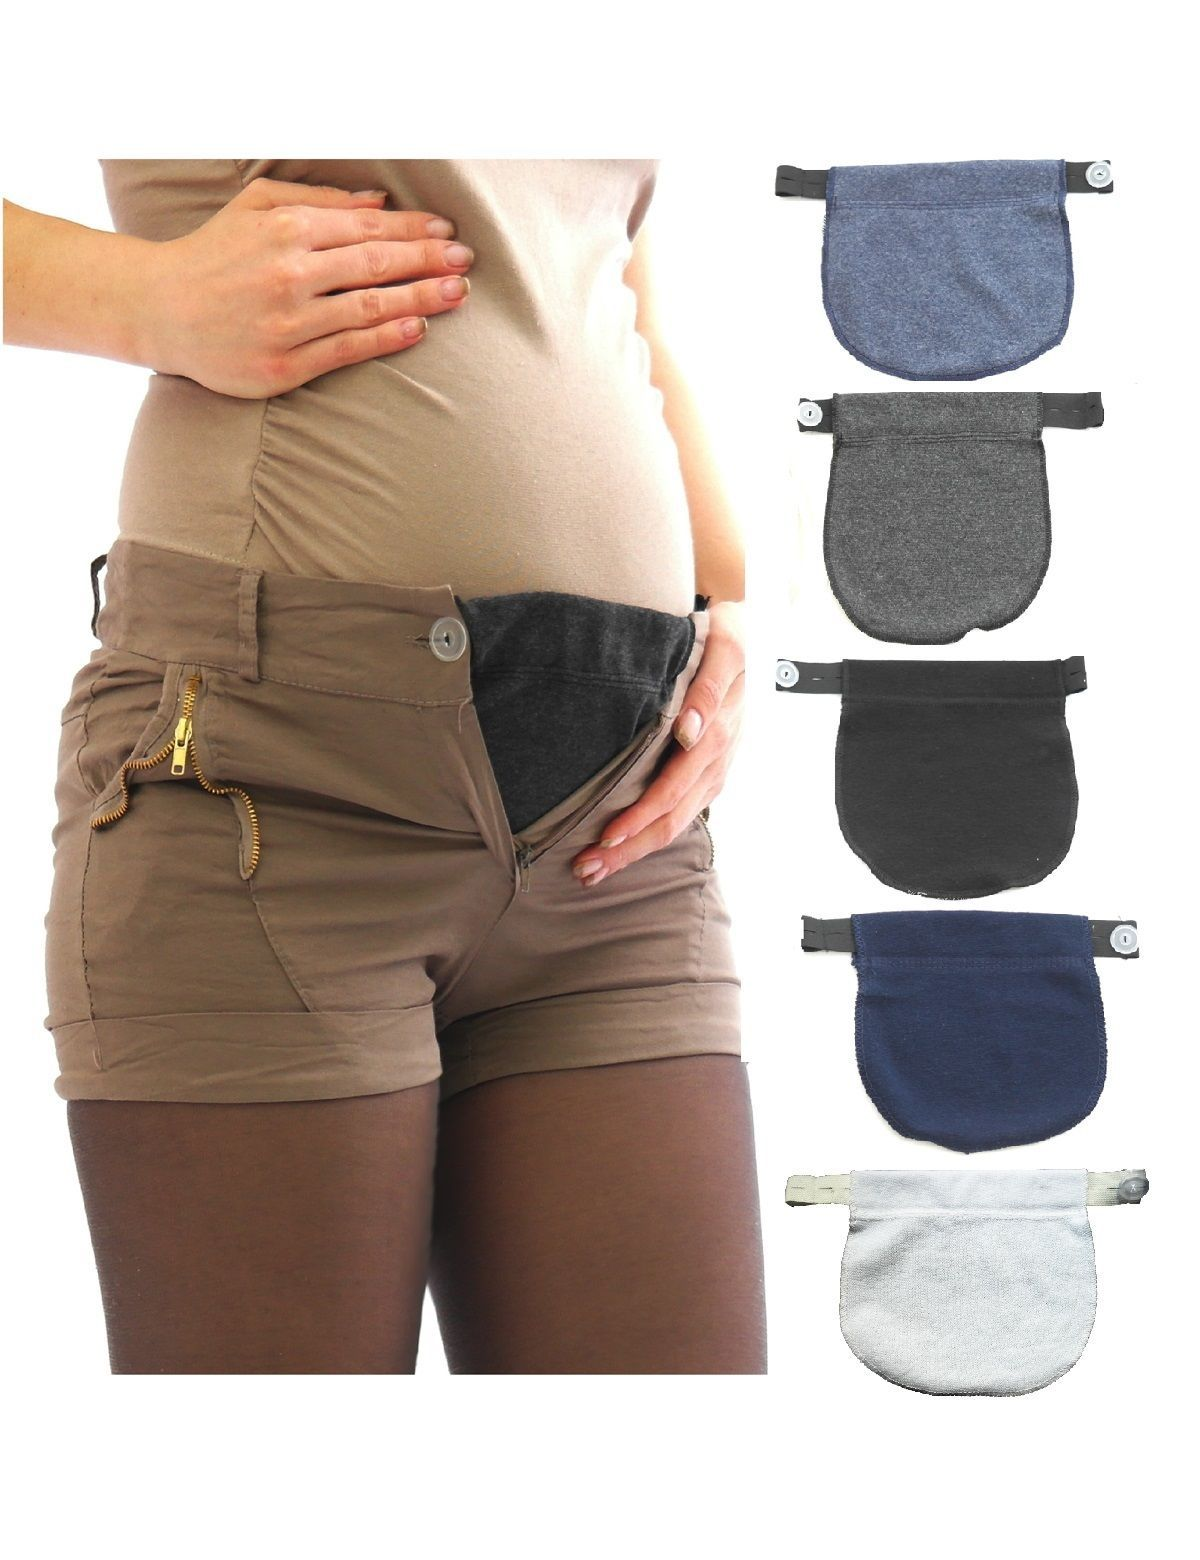 ec2f12dad  4.0 - Pants Extension Pants-Skirt Belly Band Gummi Knopf For Umstand -  Trousers  ebay  Fashion